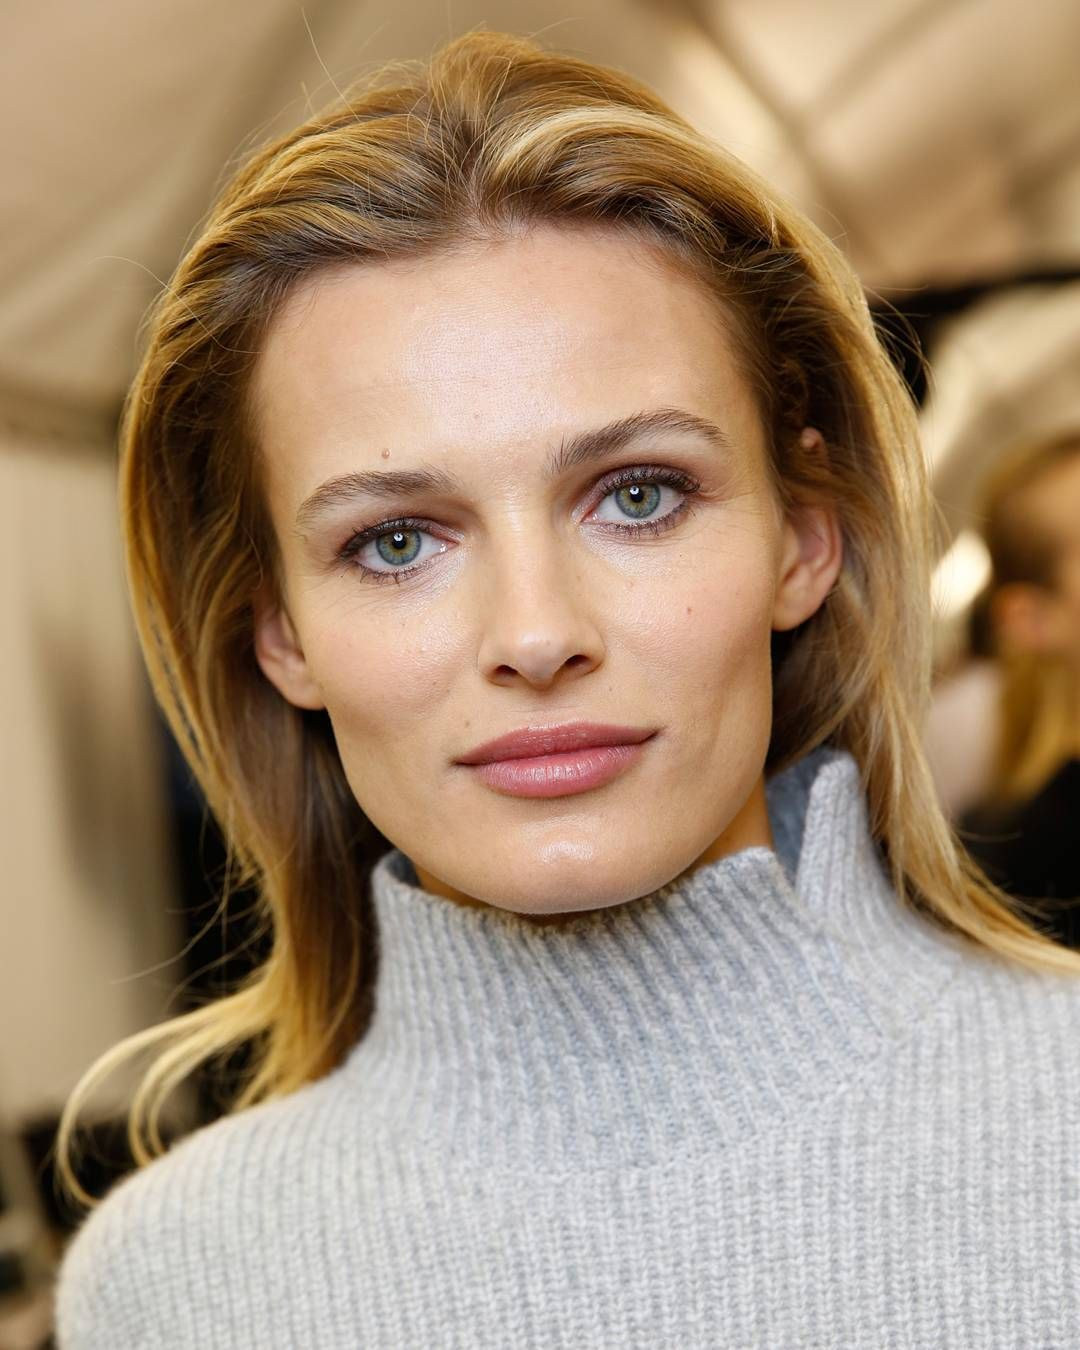 Pictures Edita Vilkeviciute nudes (32 photo), Pussy, Sideboobs, Instagram, butt 2020